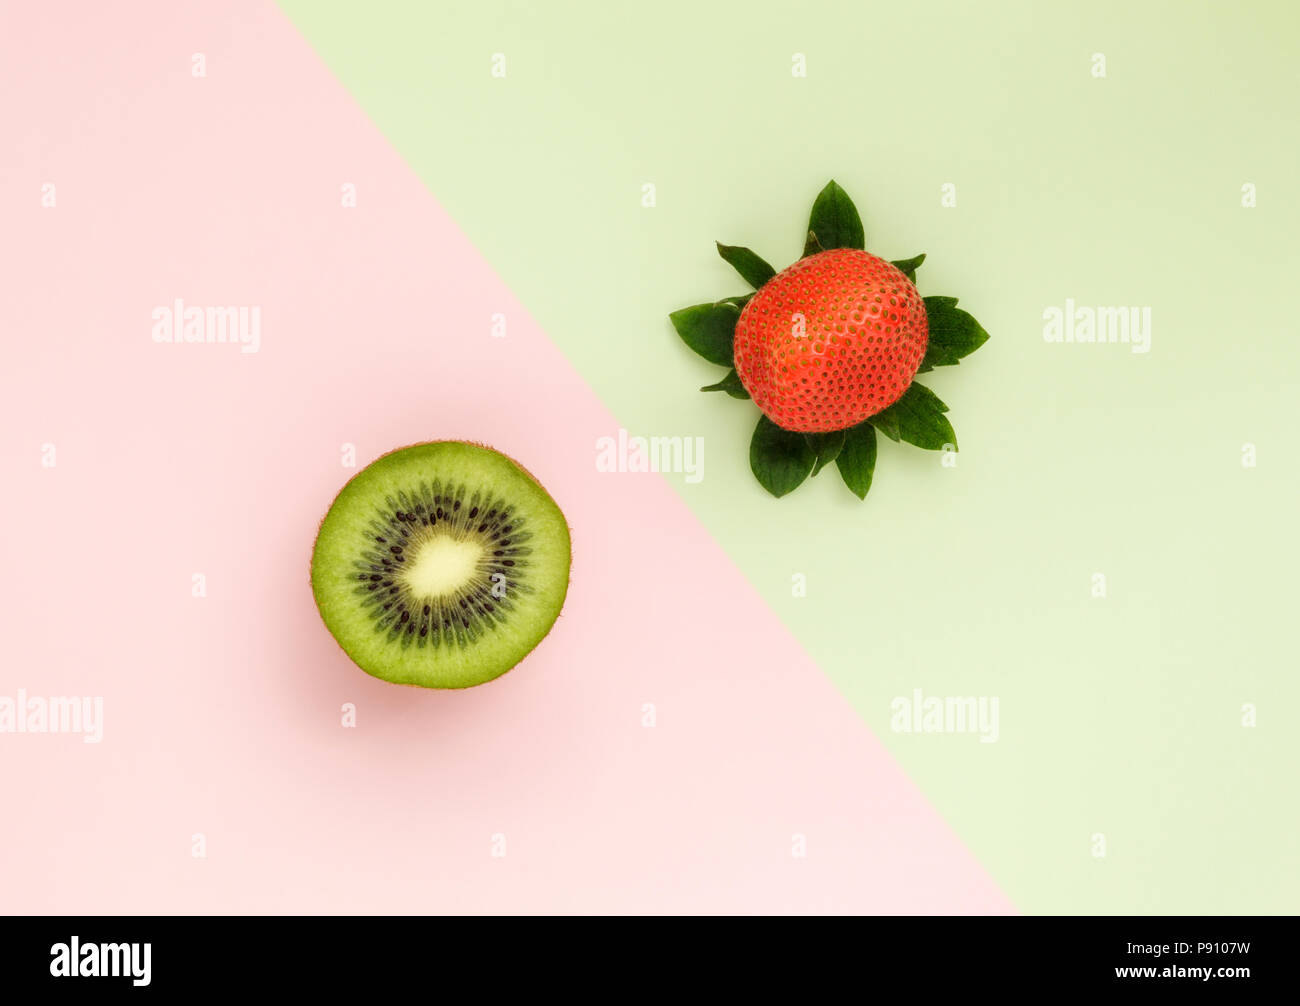 One Kiwi half and one Strawberry on duo color background - Stock Image